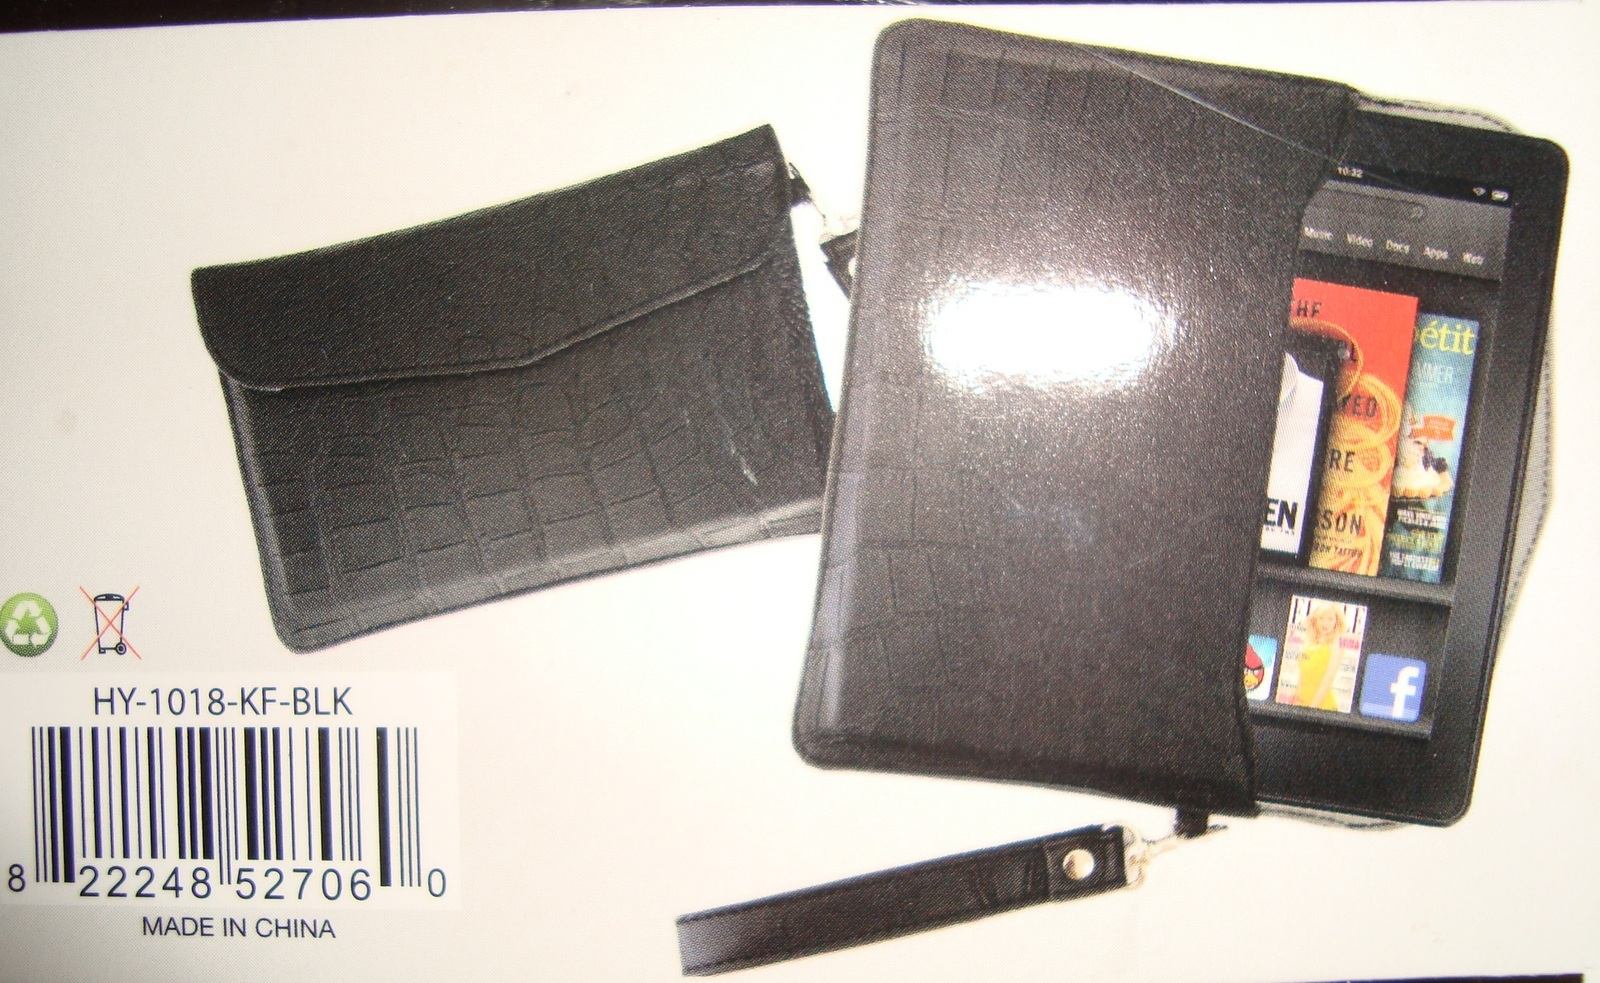 NEW - HYPE BLACK ENVELOPE CASE FOR KINDLE FIRE